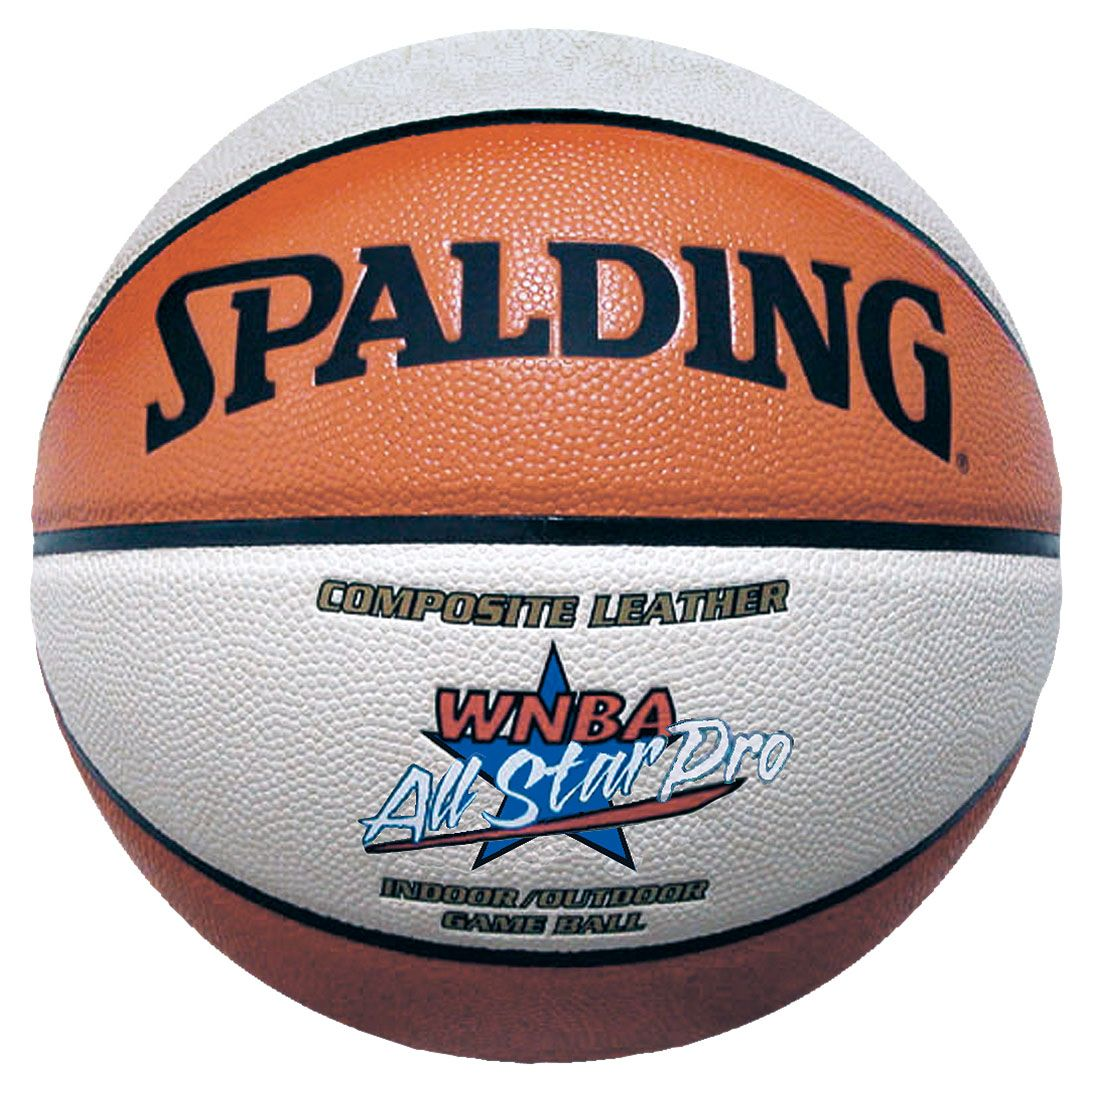 Spalding Womens Basketball